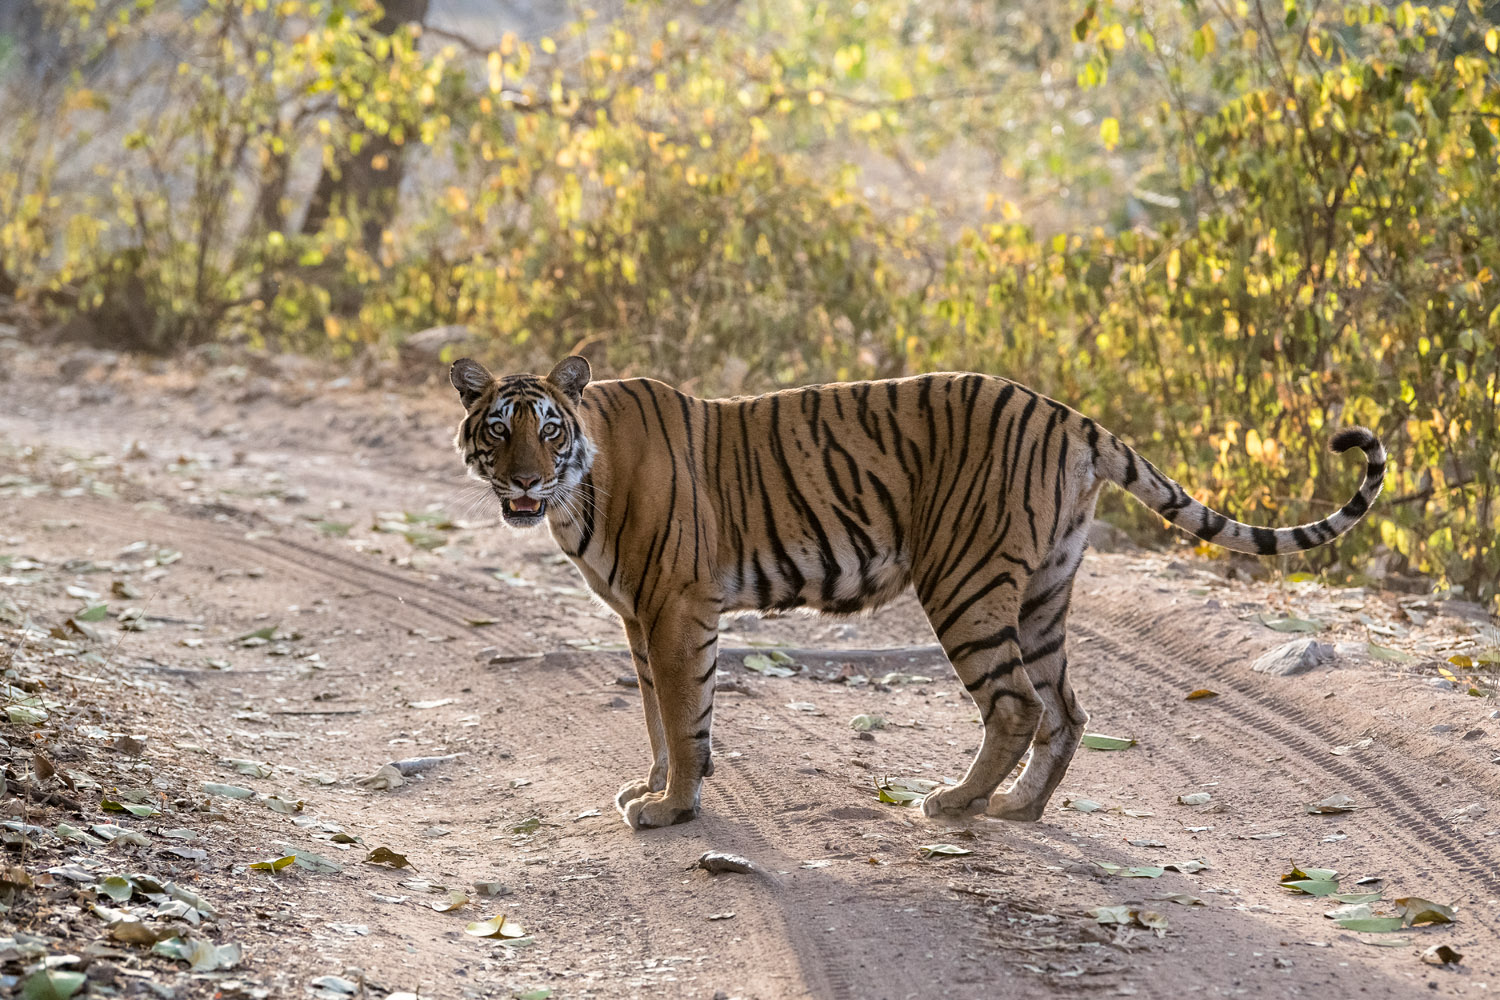 Bengal tigress on forest track, Ranthambhore National Park, Rajasthan, India